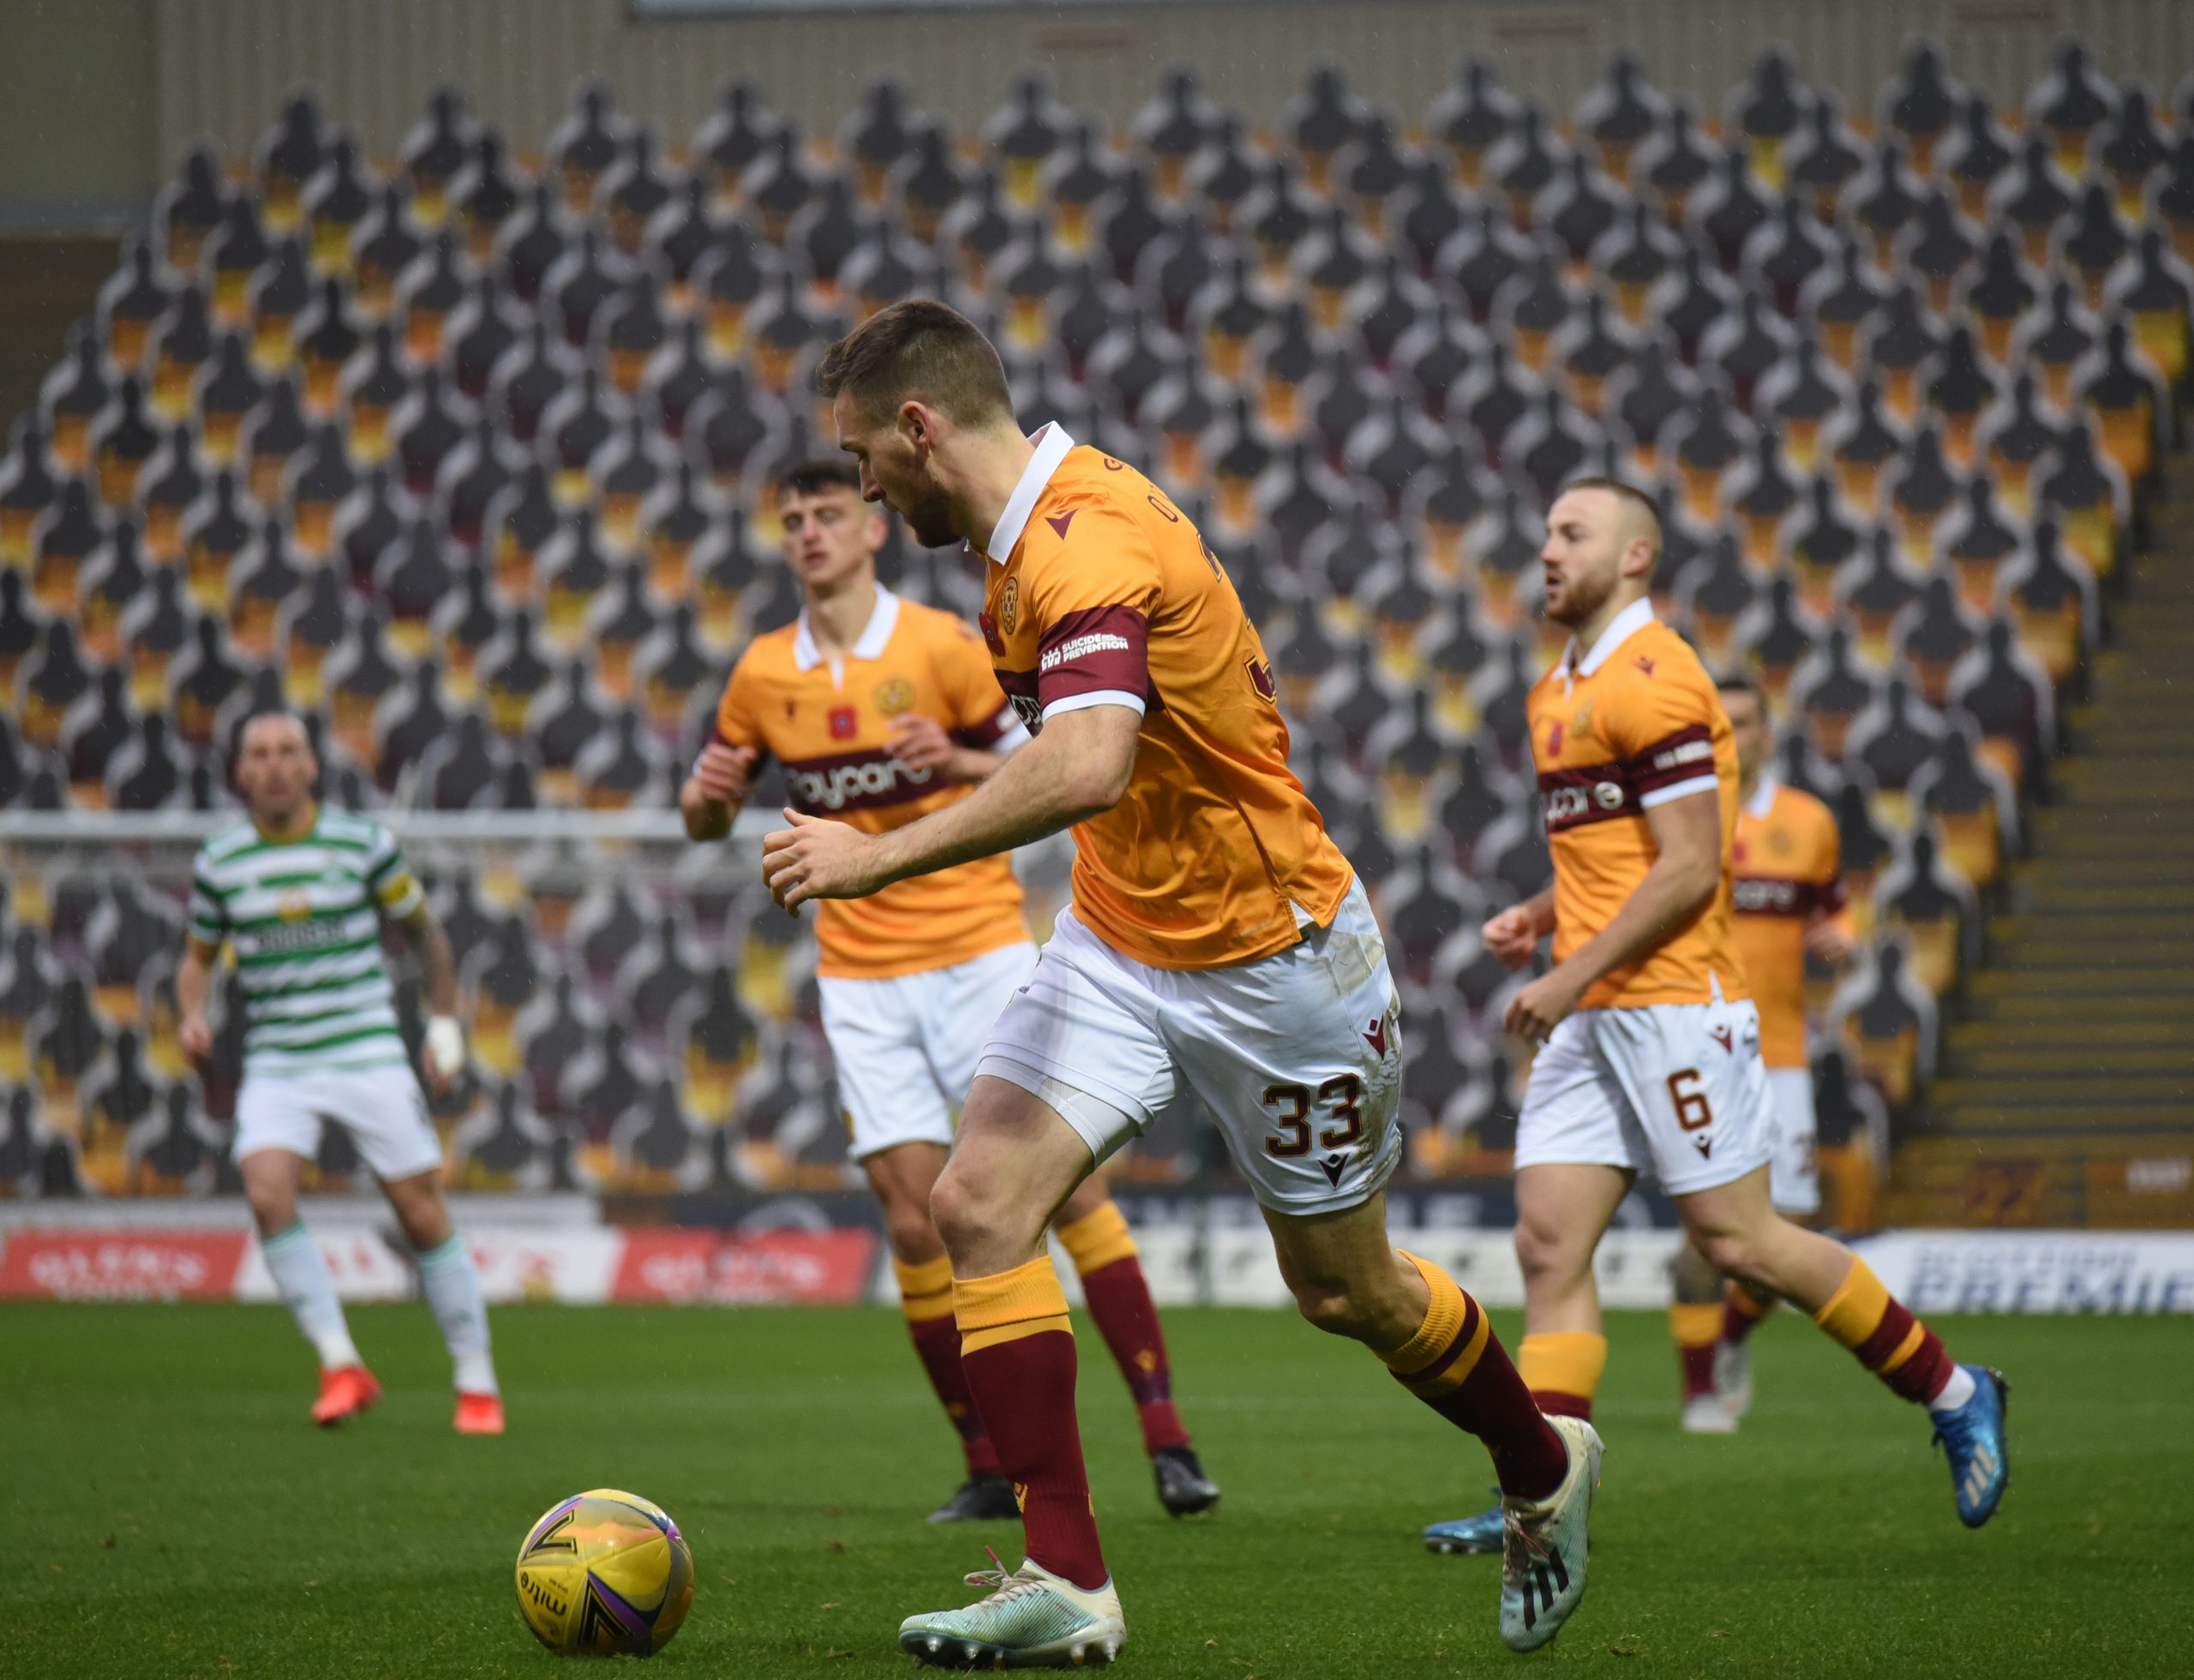 Motherwell v Celtic , 8 November 2020 , Scottish Premiership, photograph by David Rankin , News Pictures Scotland